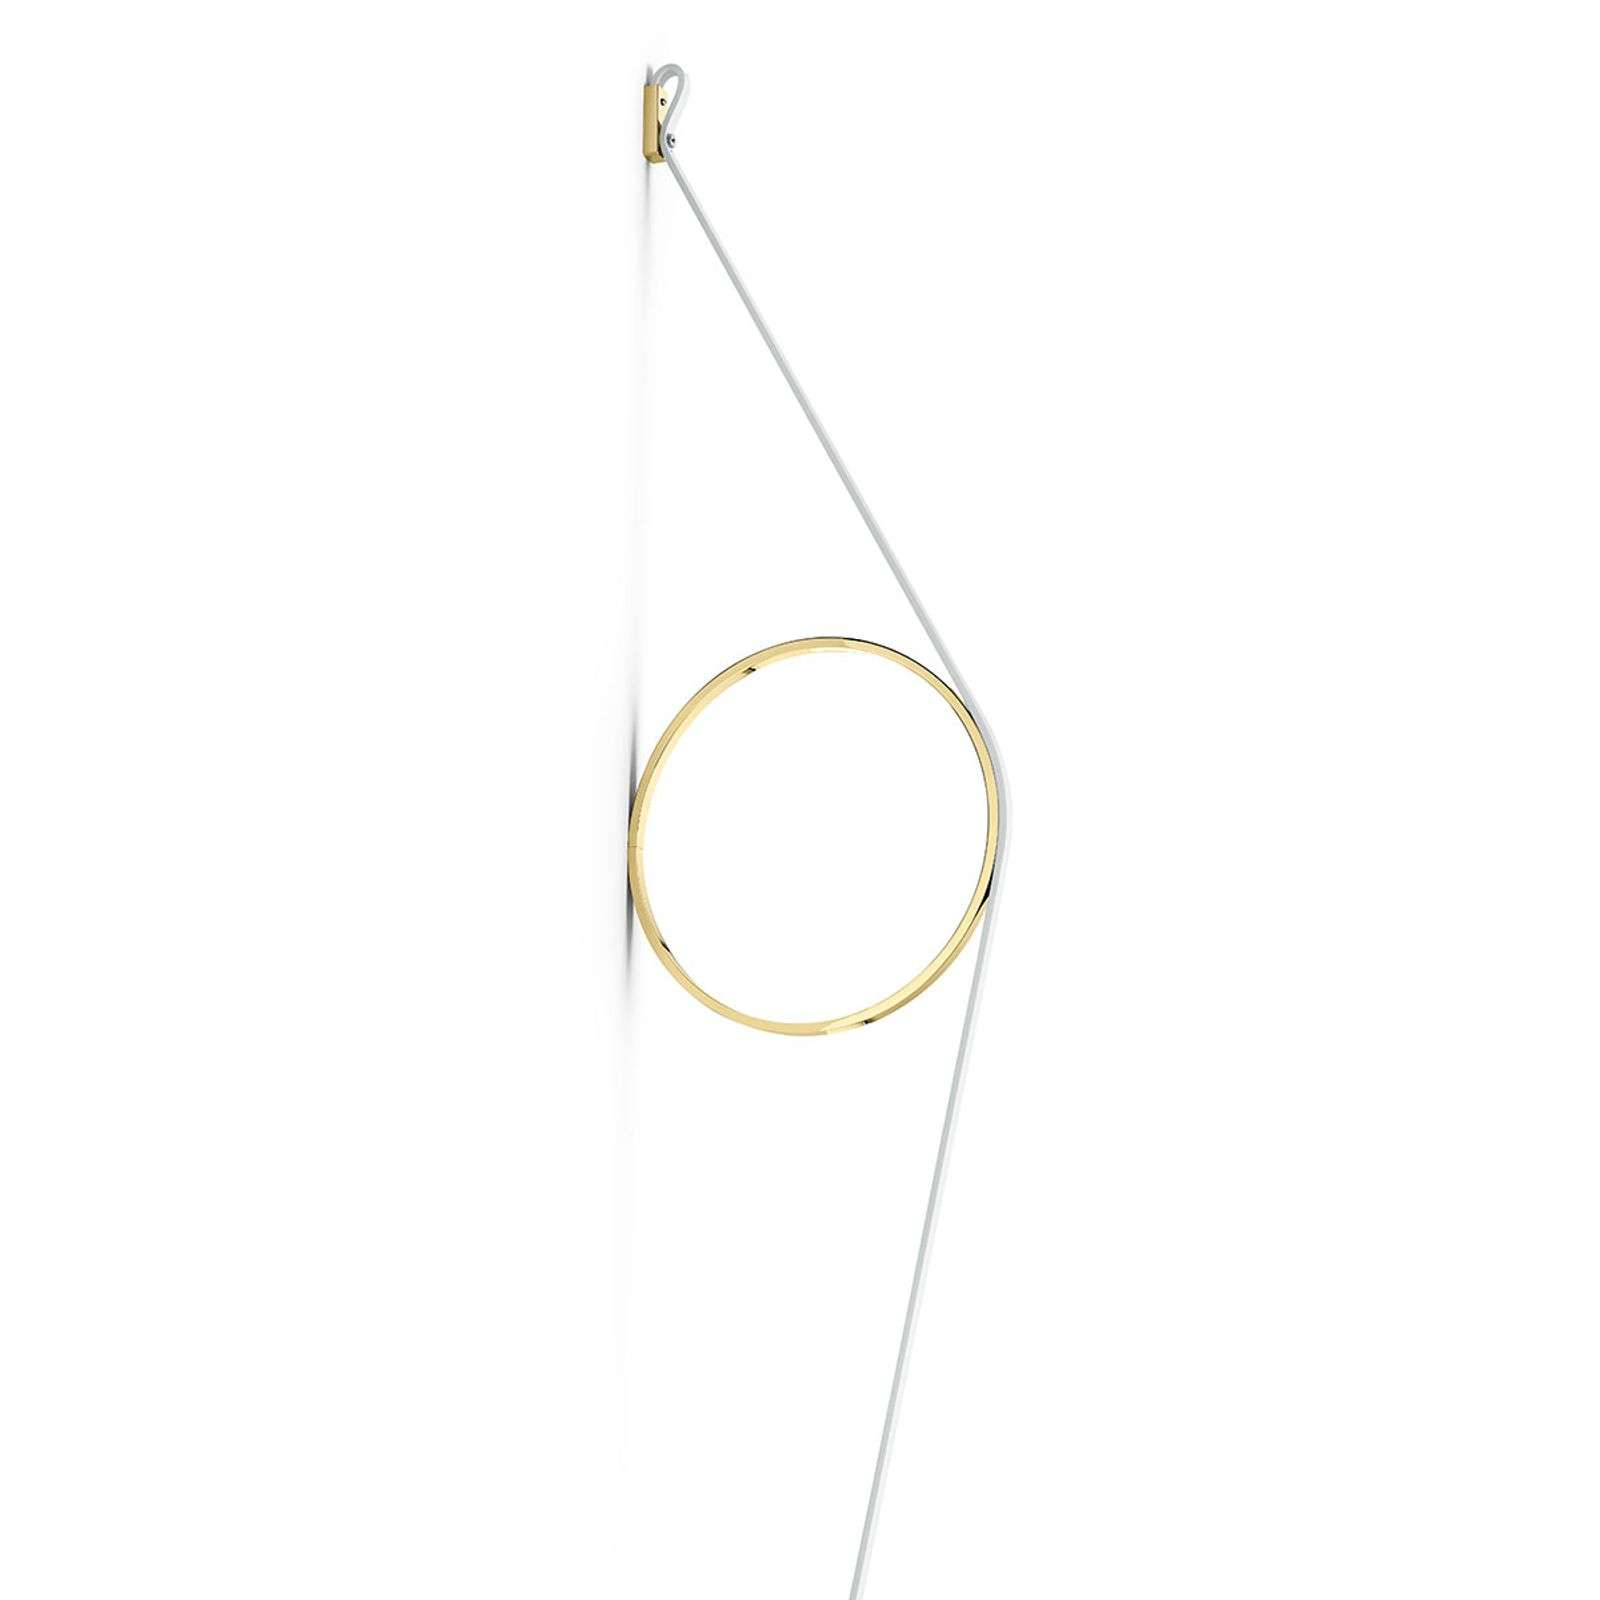 FLOS Wirering applique LED bianca, anello oro